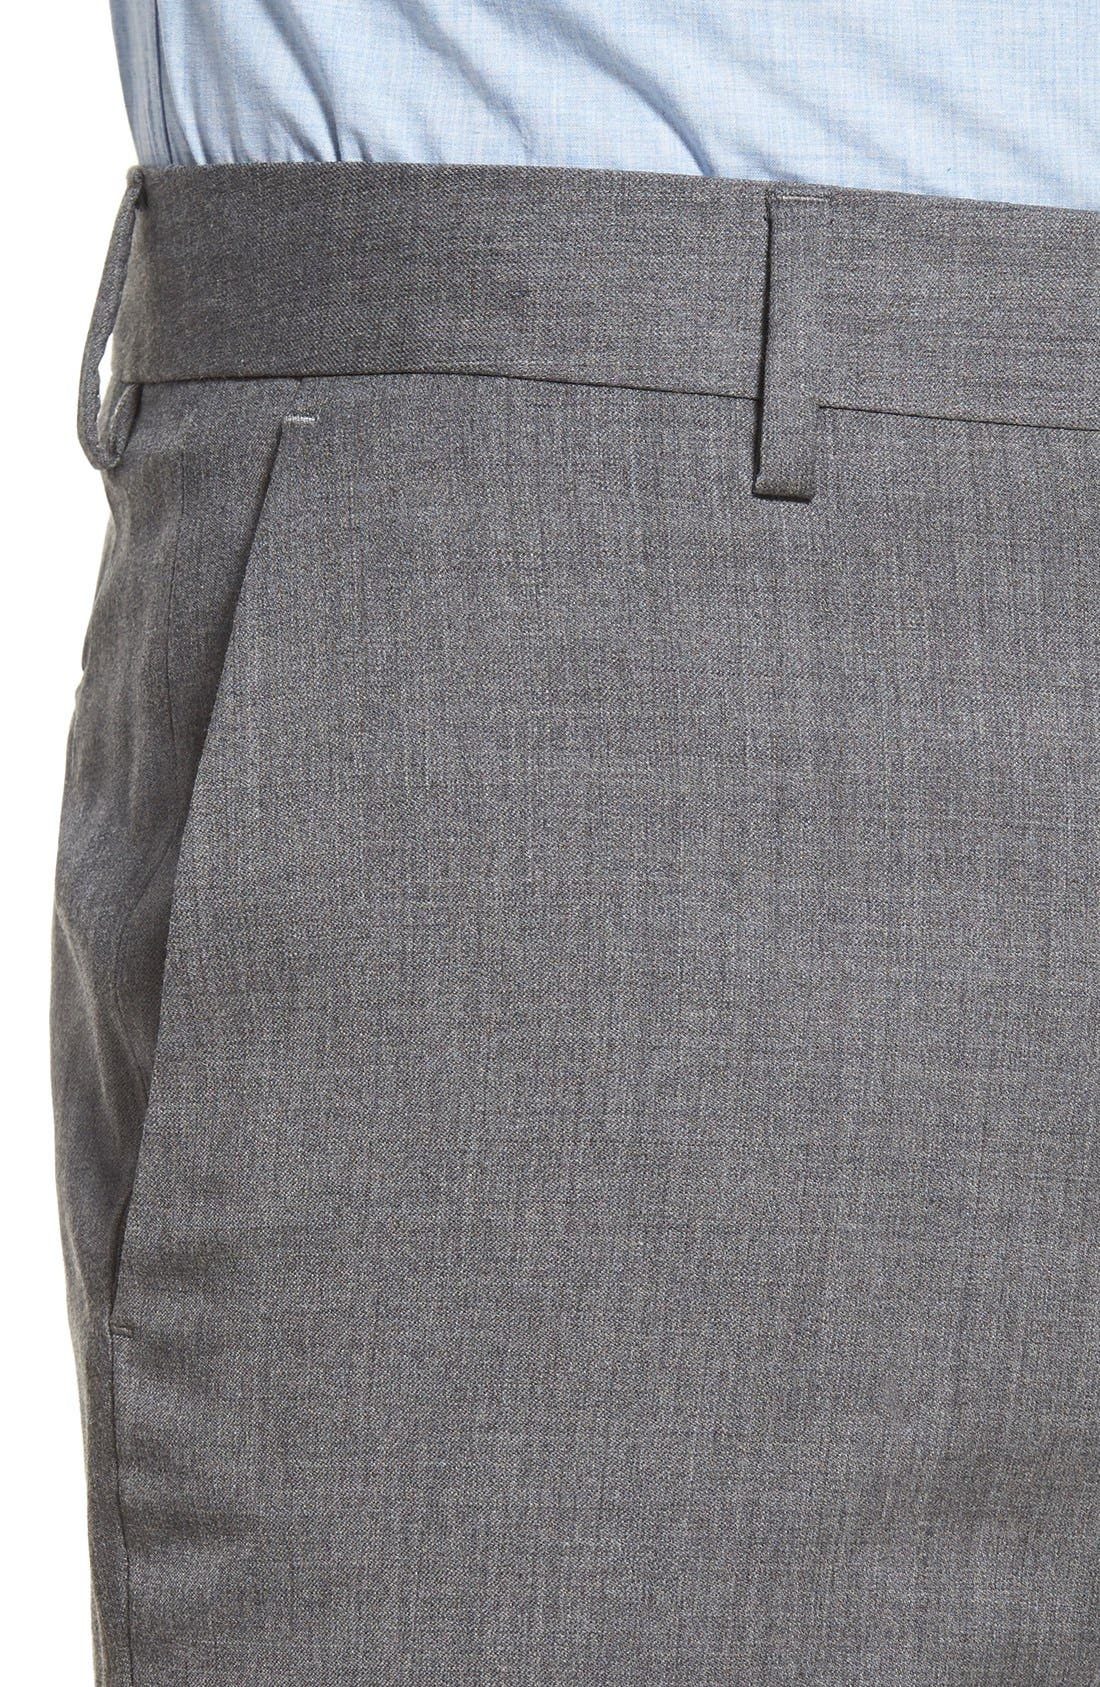 Alternate Image 4  - Bonobos Jetsetter Slim Fit Flat Front Solid Stretch Wool Trousers